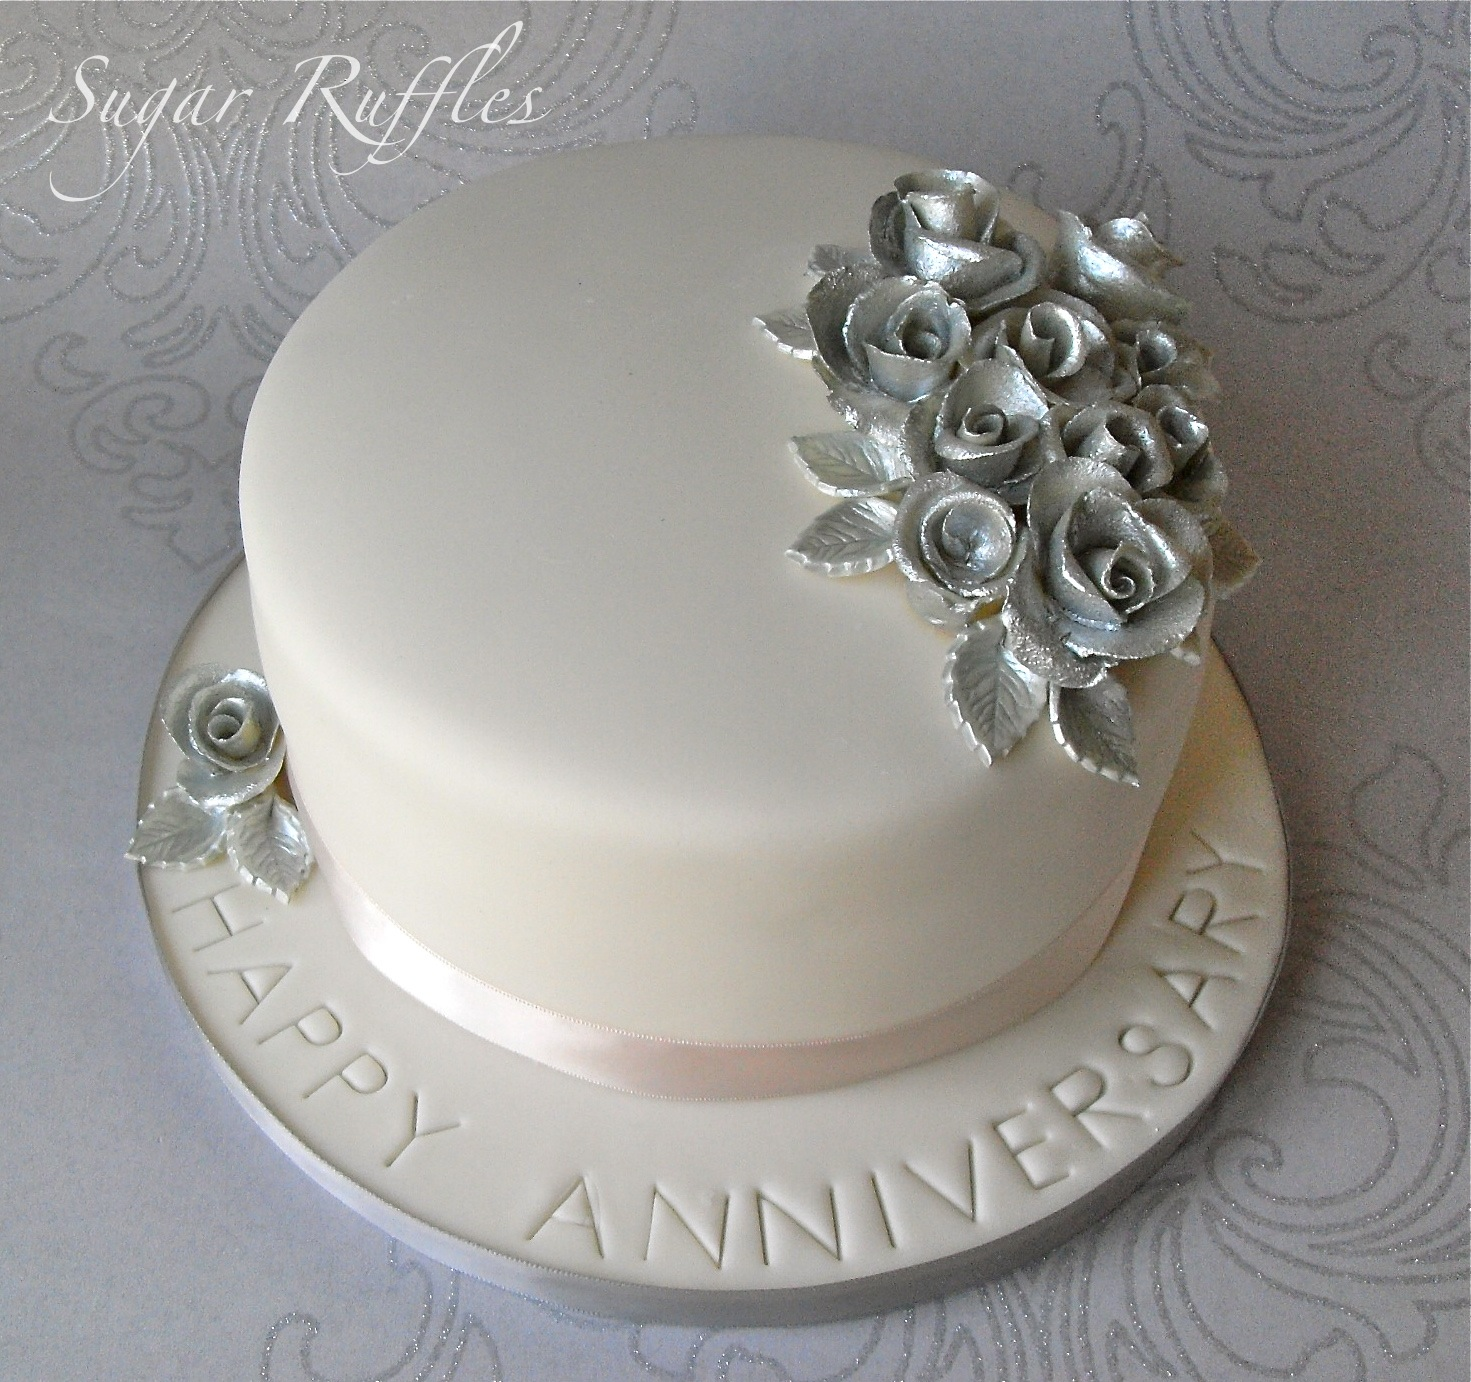 Design Of Cake For Anniversary : Wedding Anniversary Cakes - Tyler Living